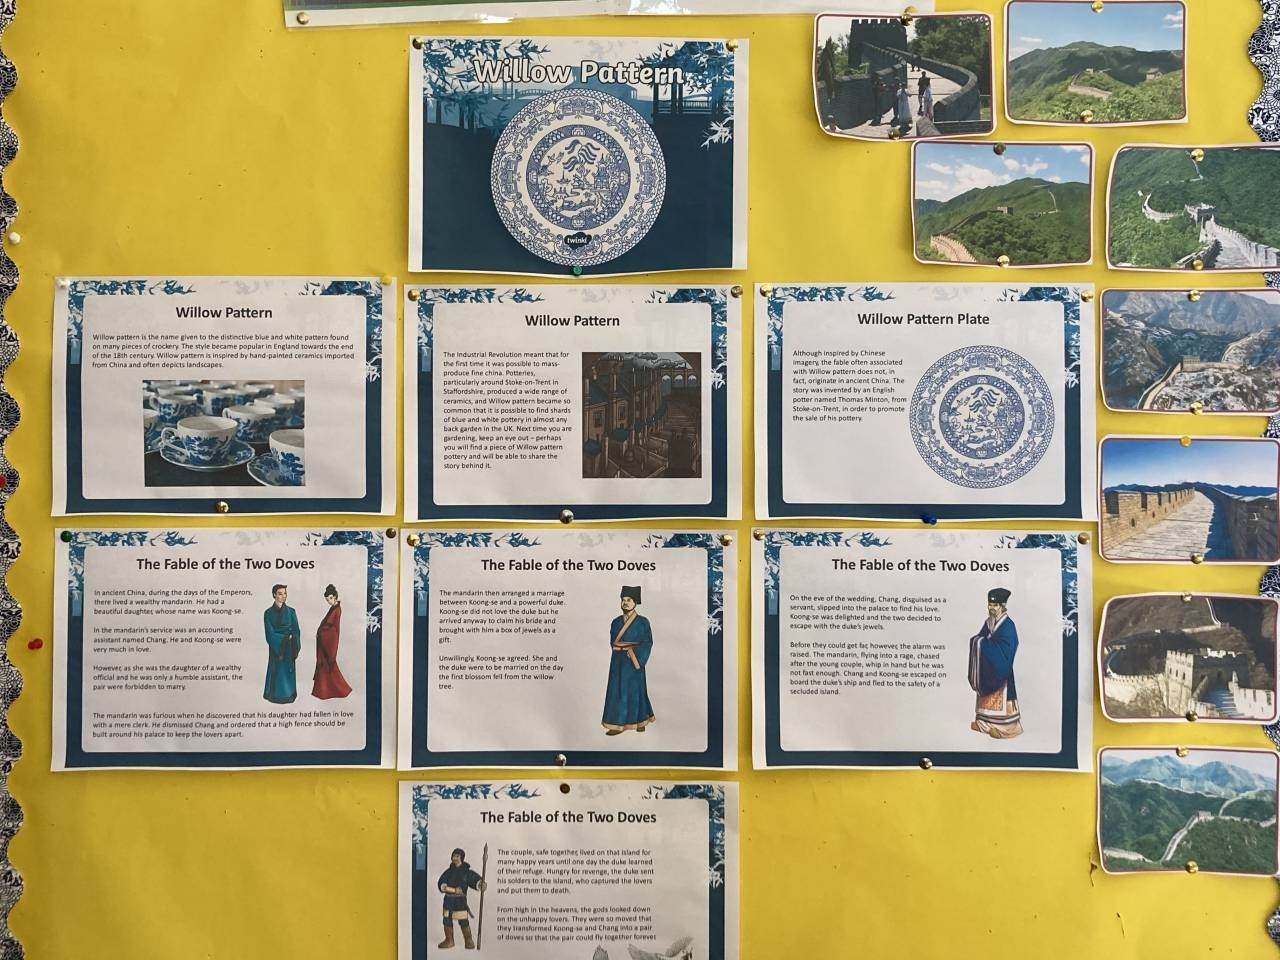 Our 6th class art was inspired by the Willow pattern and our study of Ancient China this week.